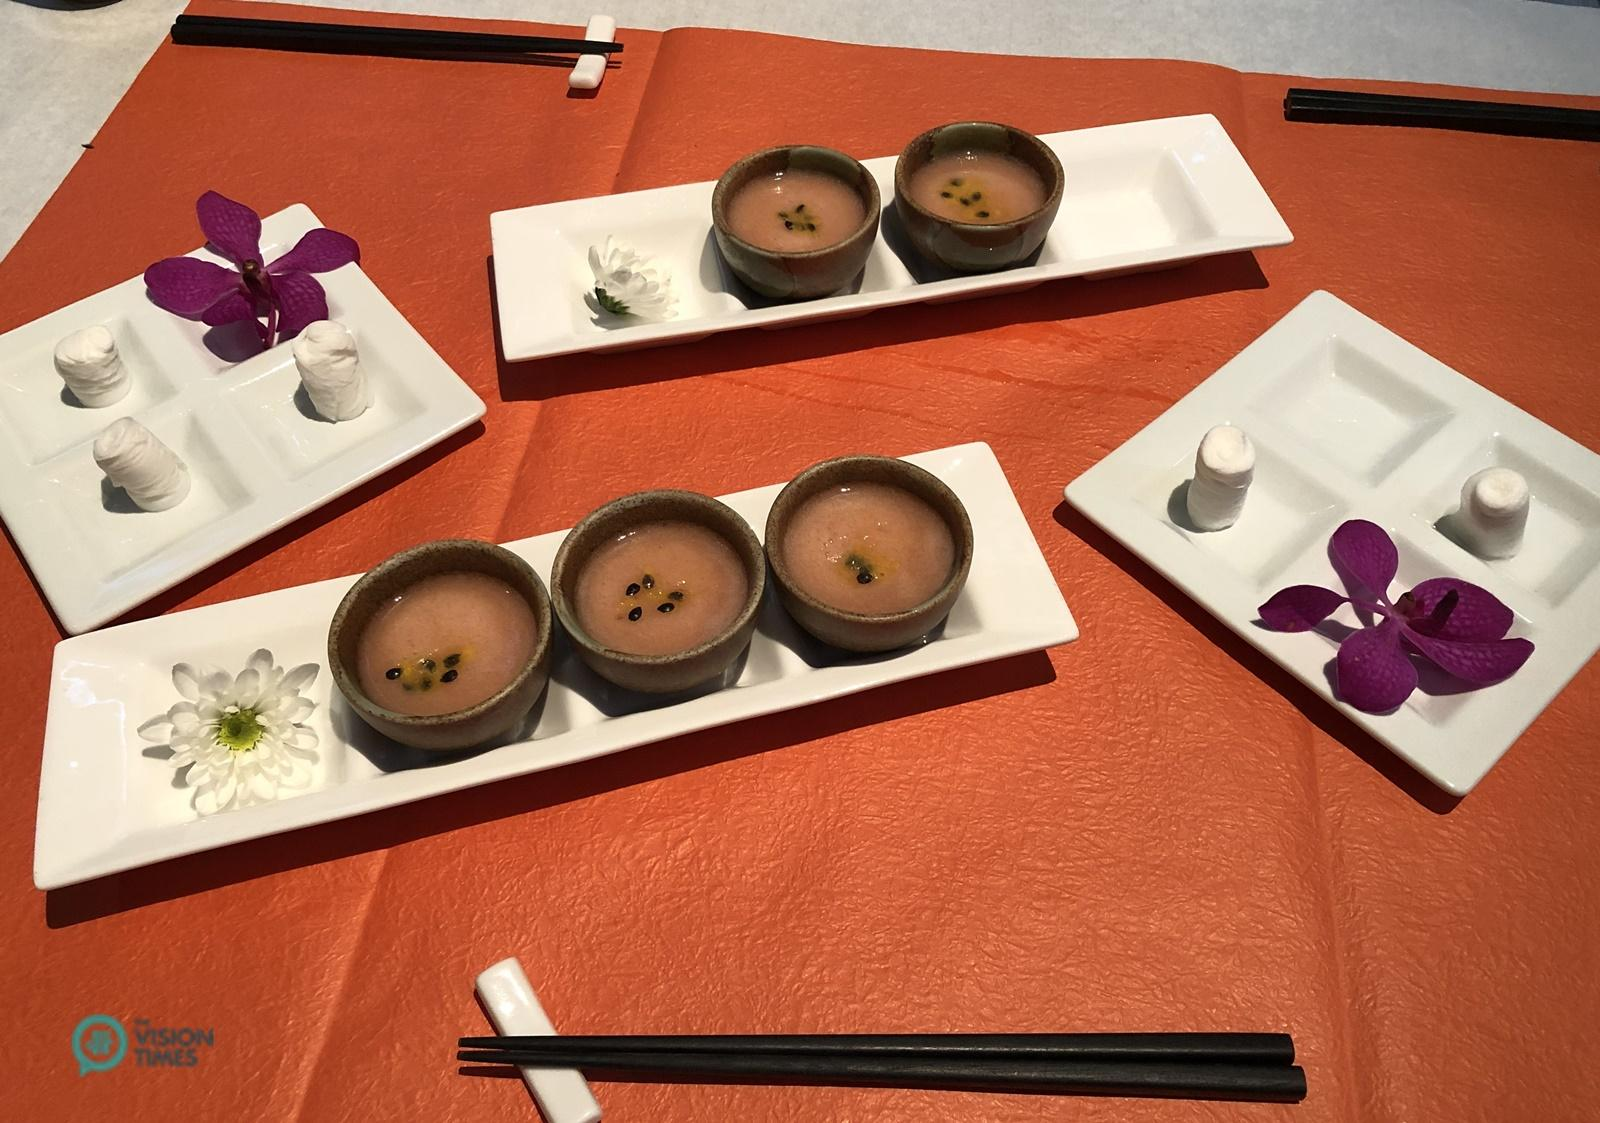 The food in Shi Yang Shan Fang is pleasing to both the eye and palate. (Image: Julia Fu / Vision Times)